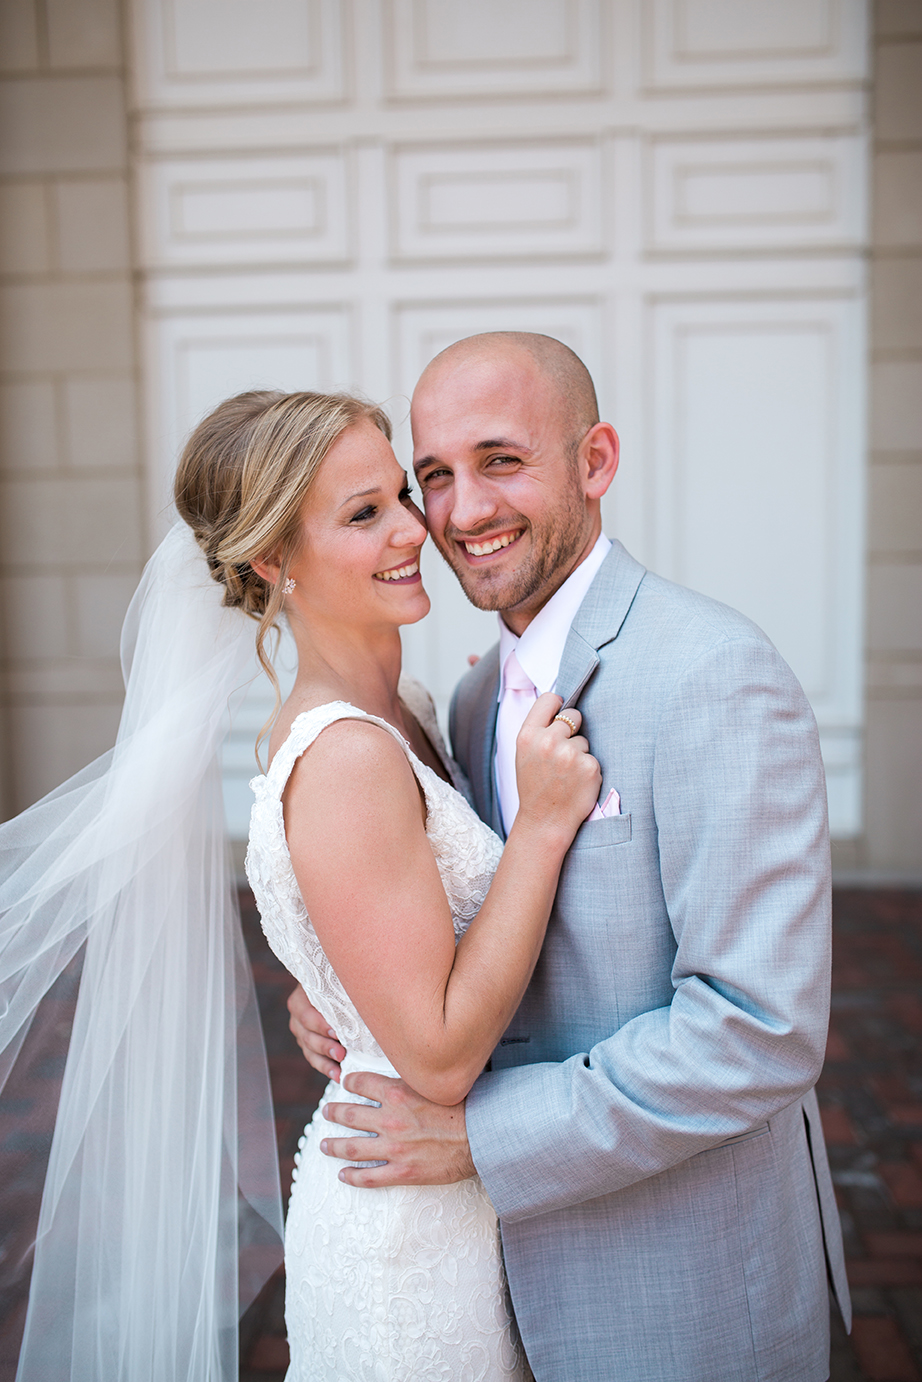 """The photos are absolutely gorgeous-- they brought tears to my eyes! There are no words to describe how grateful we are for the two of you! There are so many beautiful photos from every. single. part. of our day! Seriously we can't thank you enough!! We will cherish these photos every single day and they will serve as beautiful reminders of all of our memories from our special day."" Aaron & Jessica 